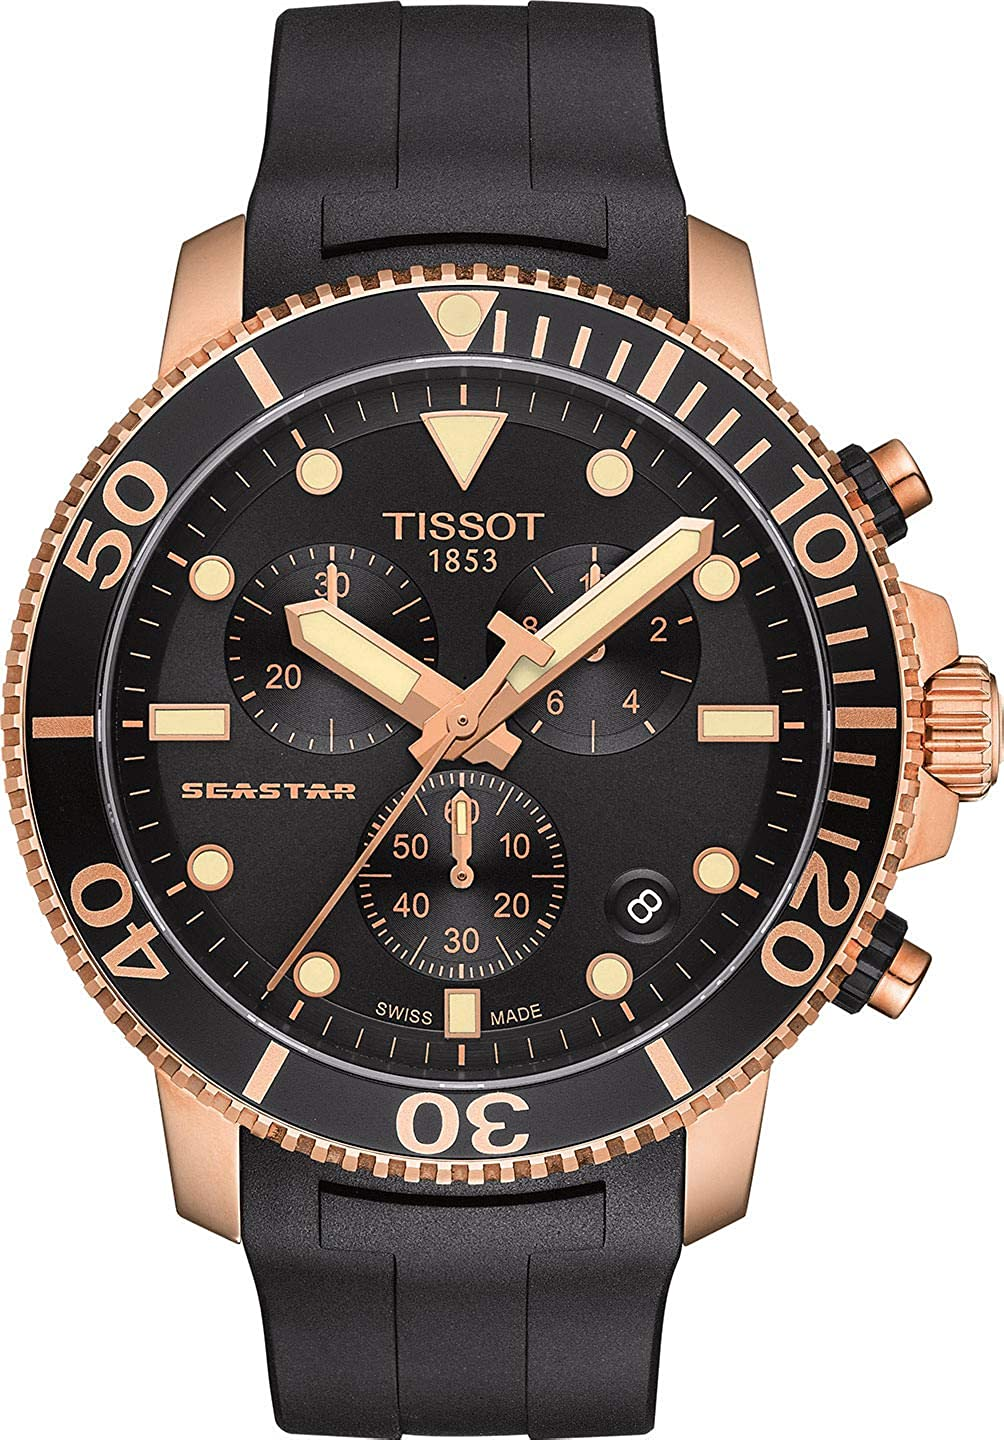 Tissot Seastar 1000 T120.417.37.051.00 Black Rubber Rose Gold Chronograph Mens Watch